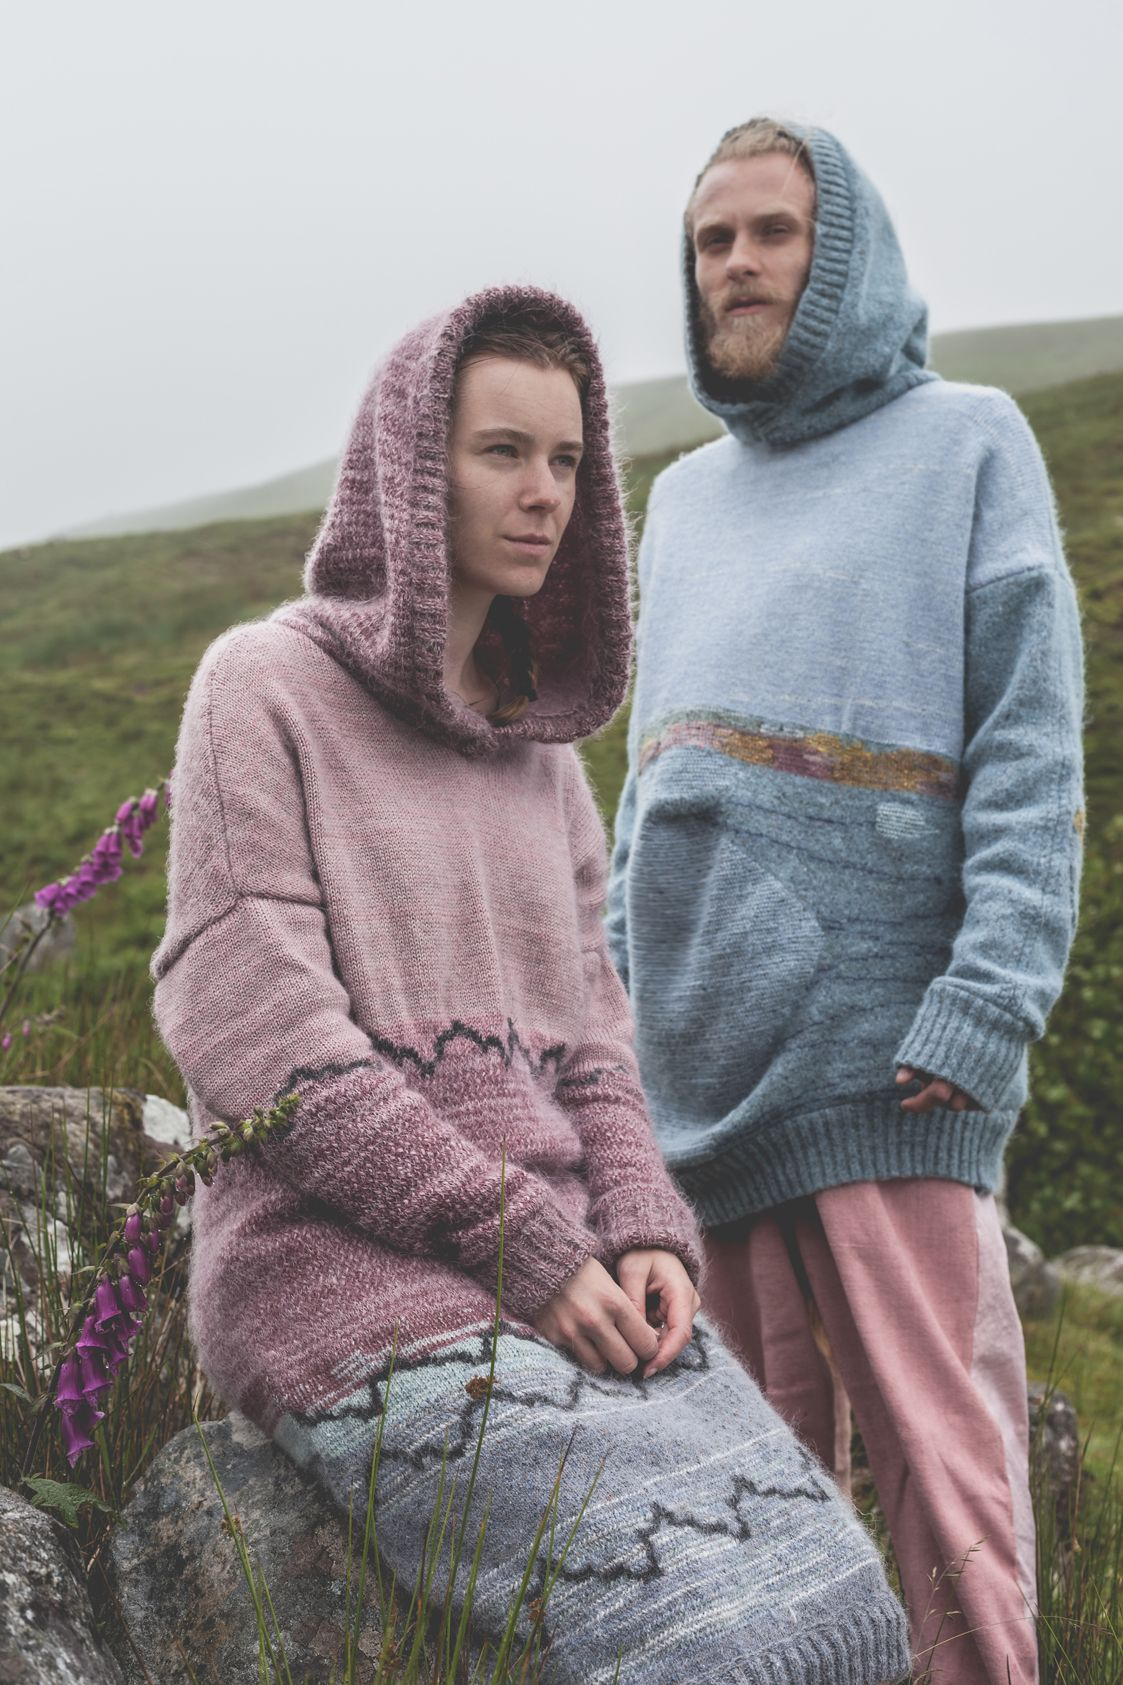 Felted Hoodies - Ethical Knitwear - Suzanna James Knitwear  Photo: Matt Honey Photography